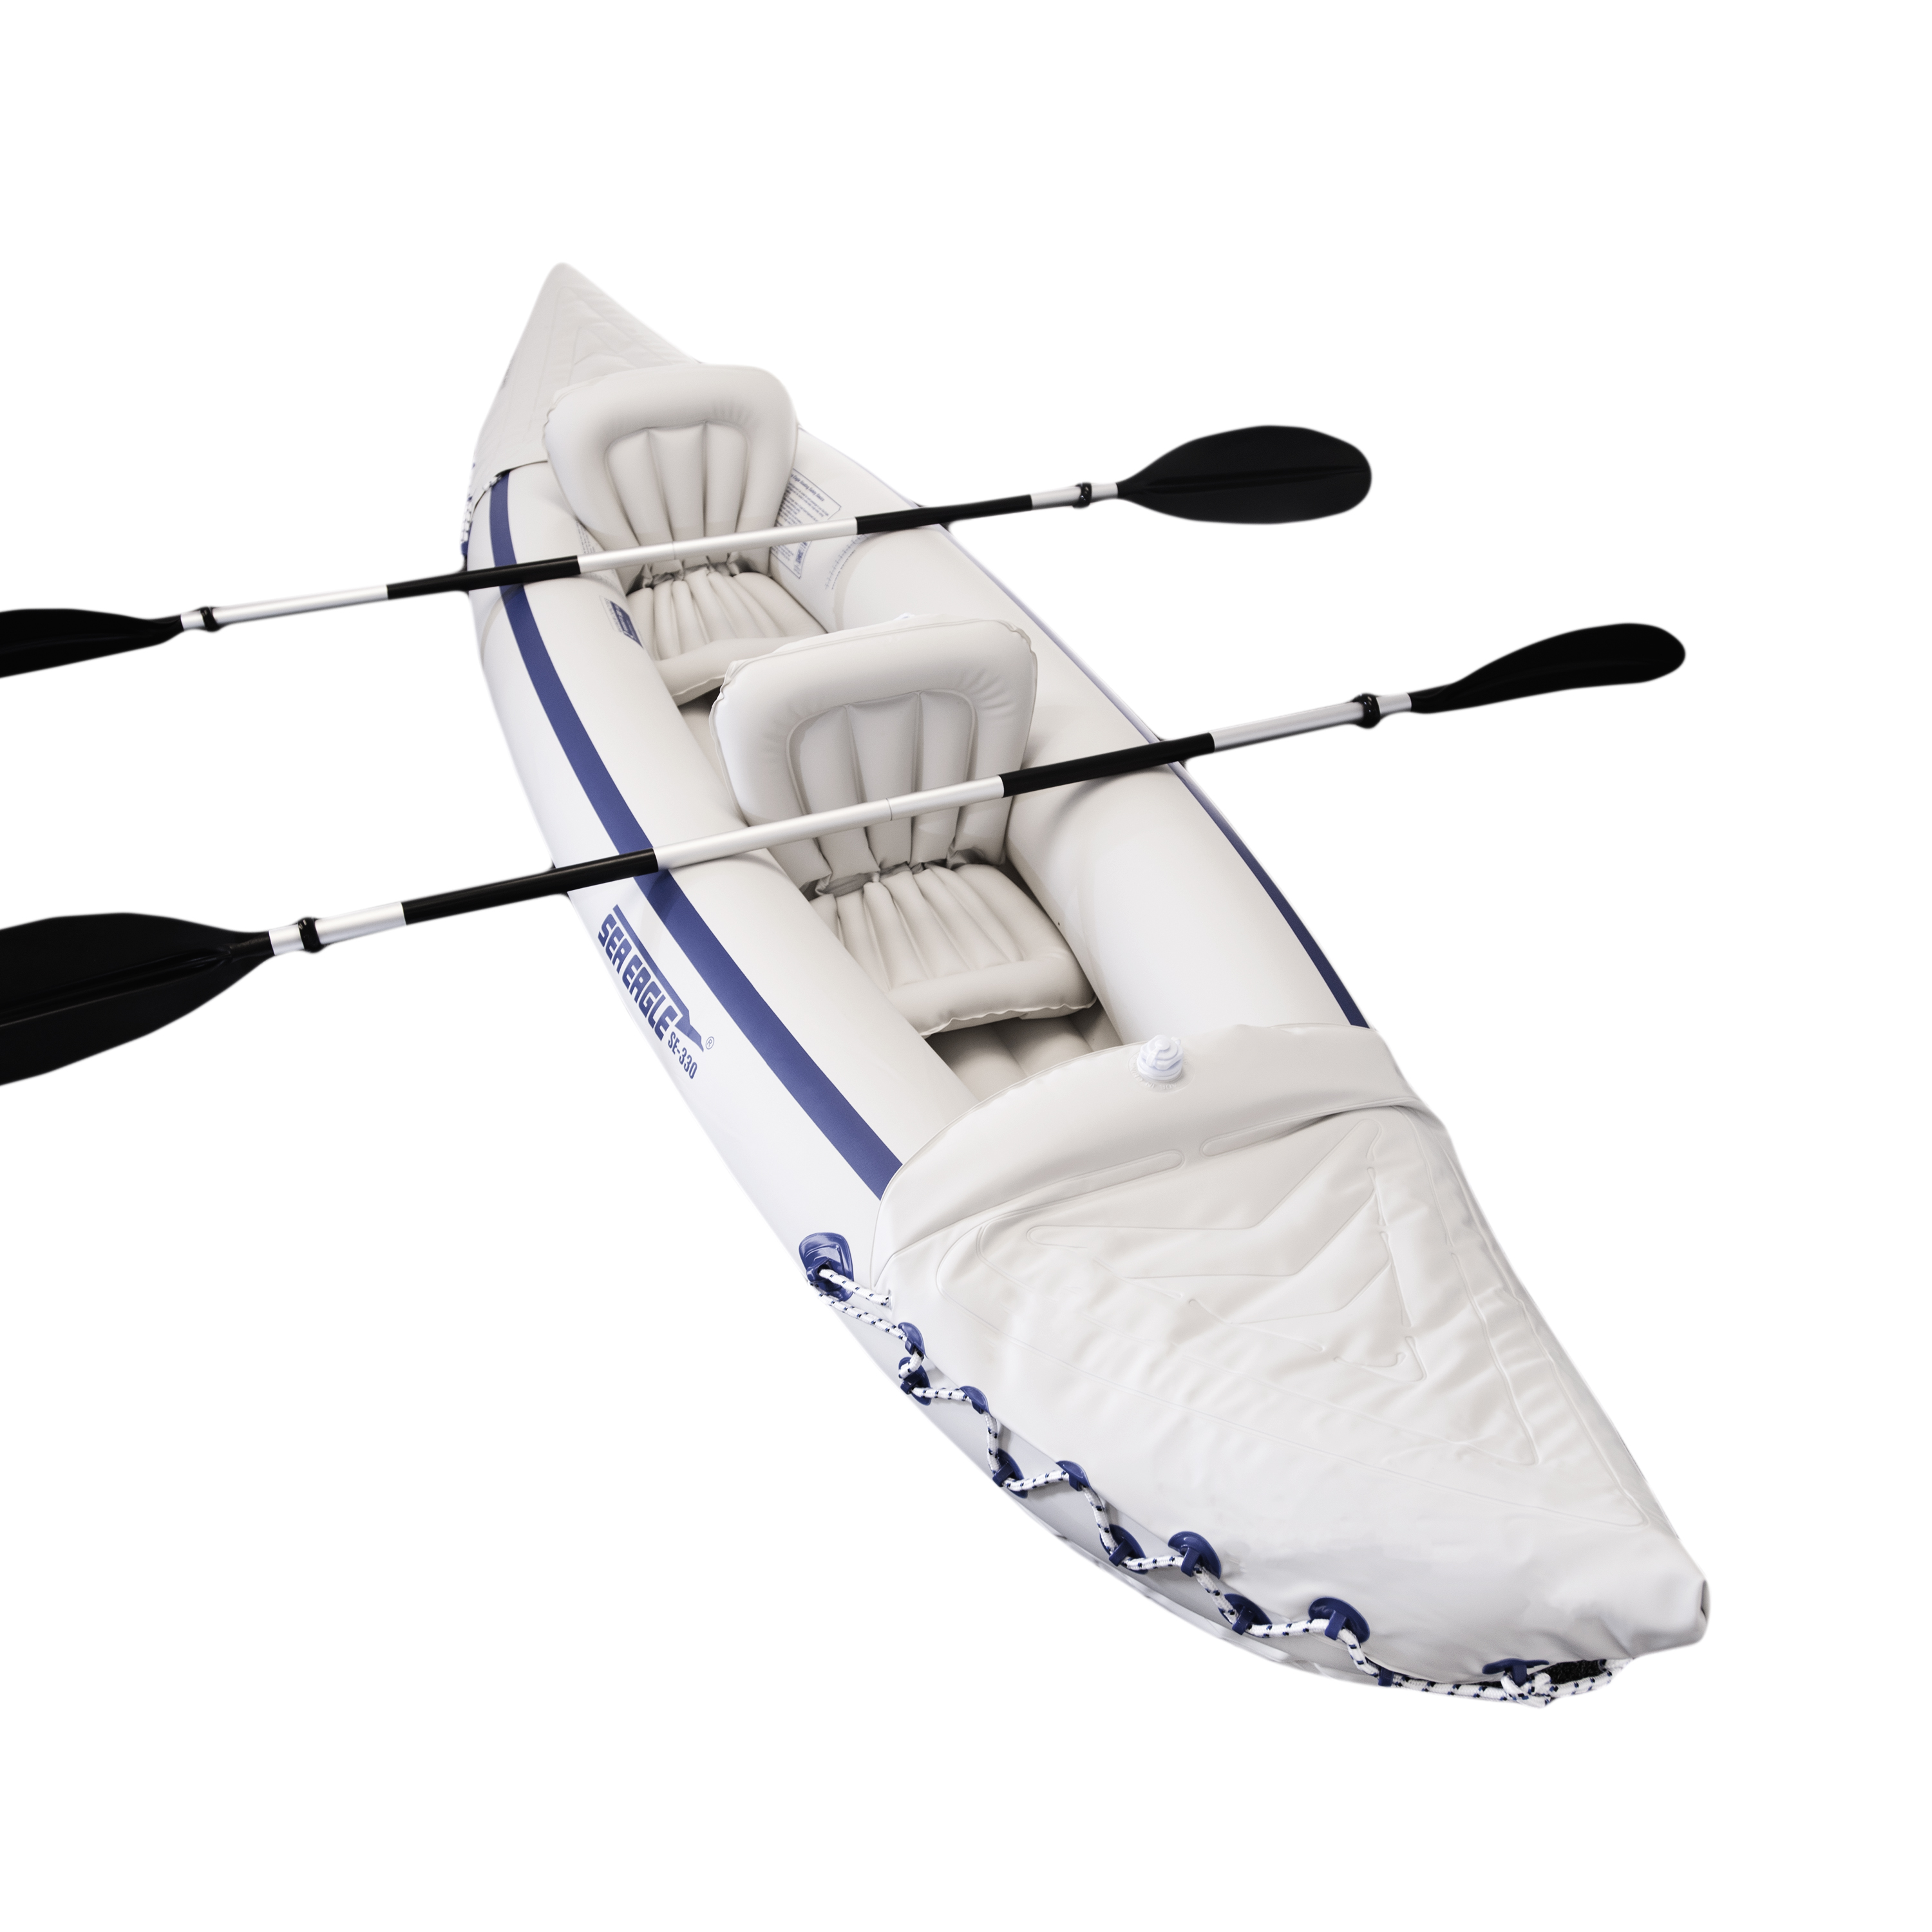 Sea Eagle 330 Start-Up 2 Person Inflatable Kayak with Pad...